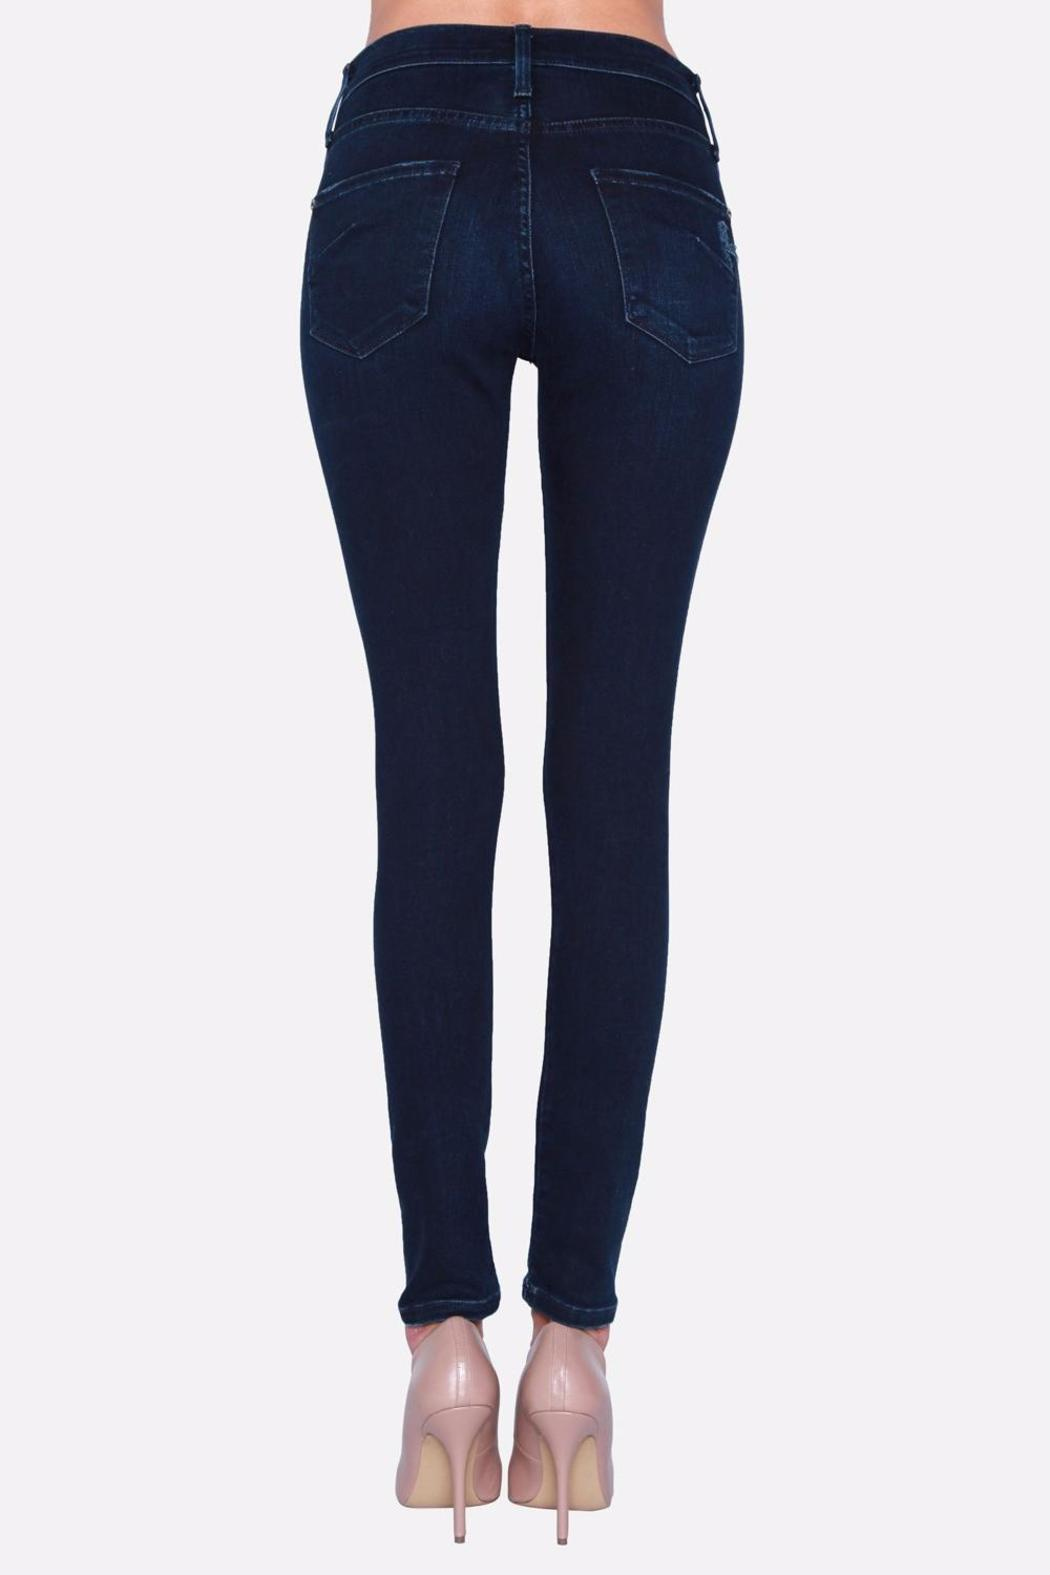 James Jeans Skinny Distressed Jeggings - Front Full Image